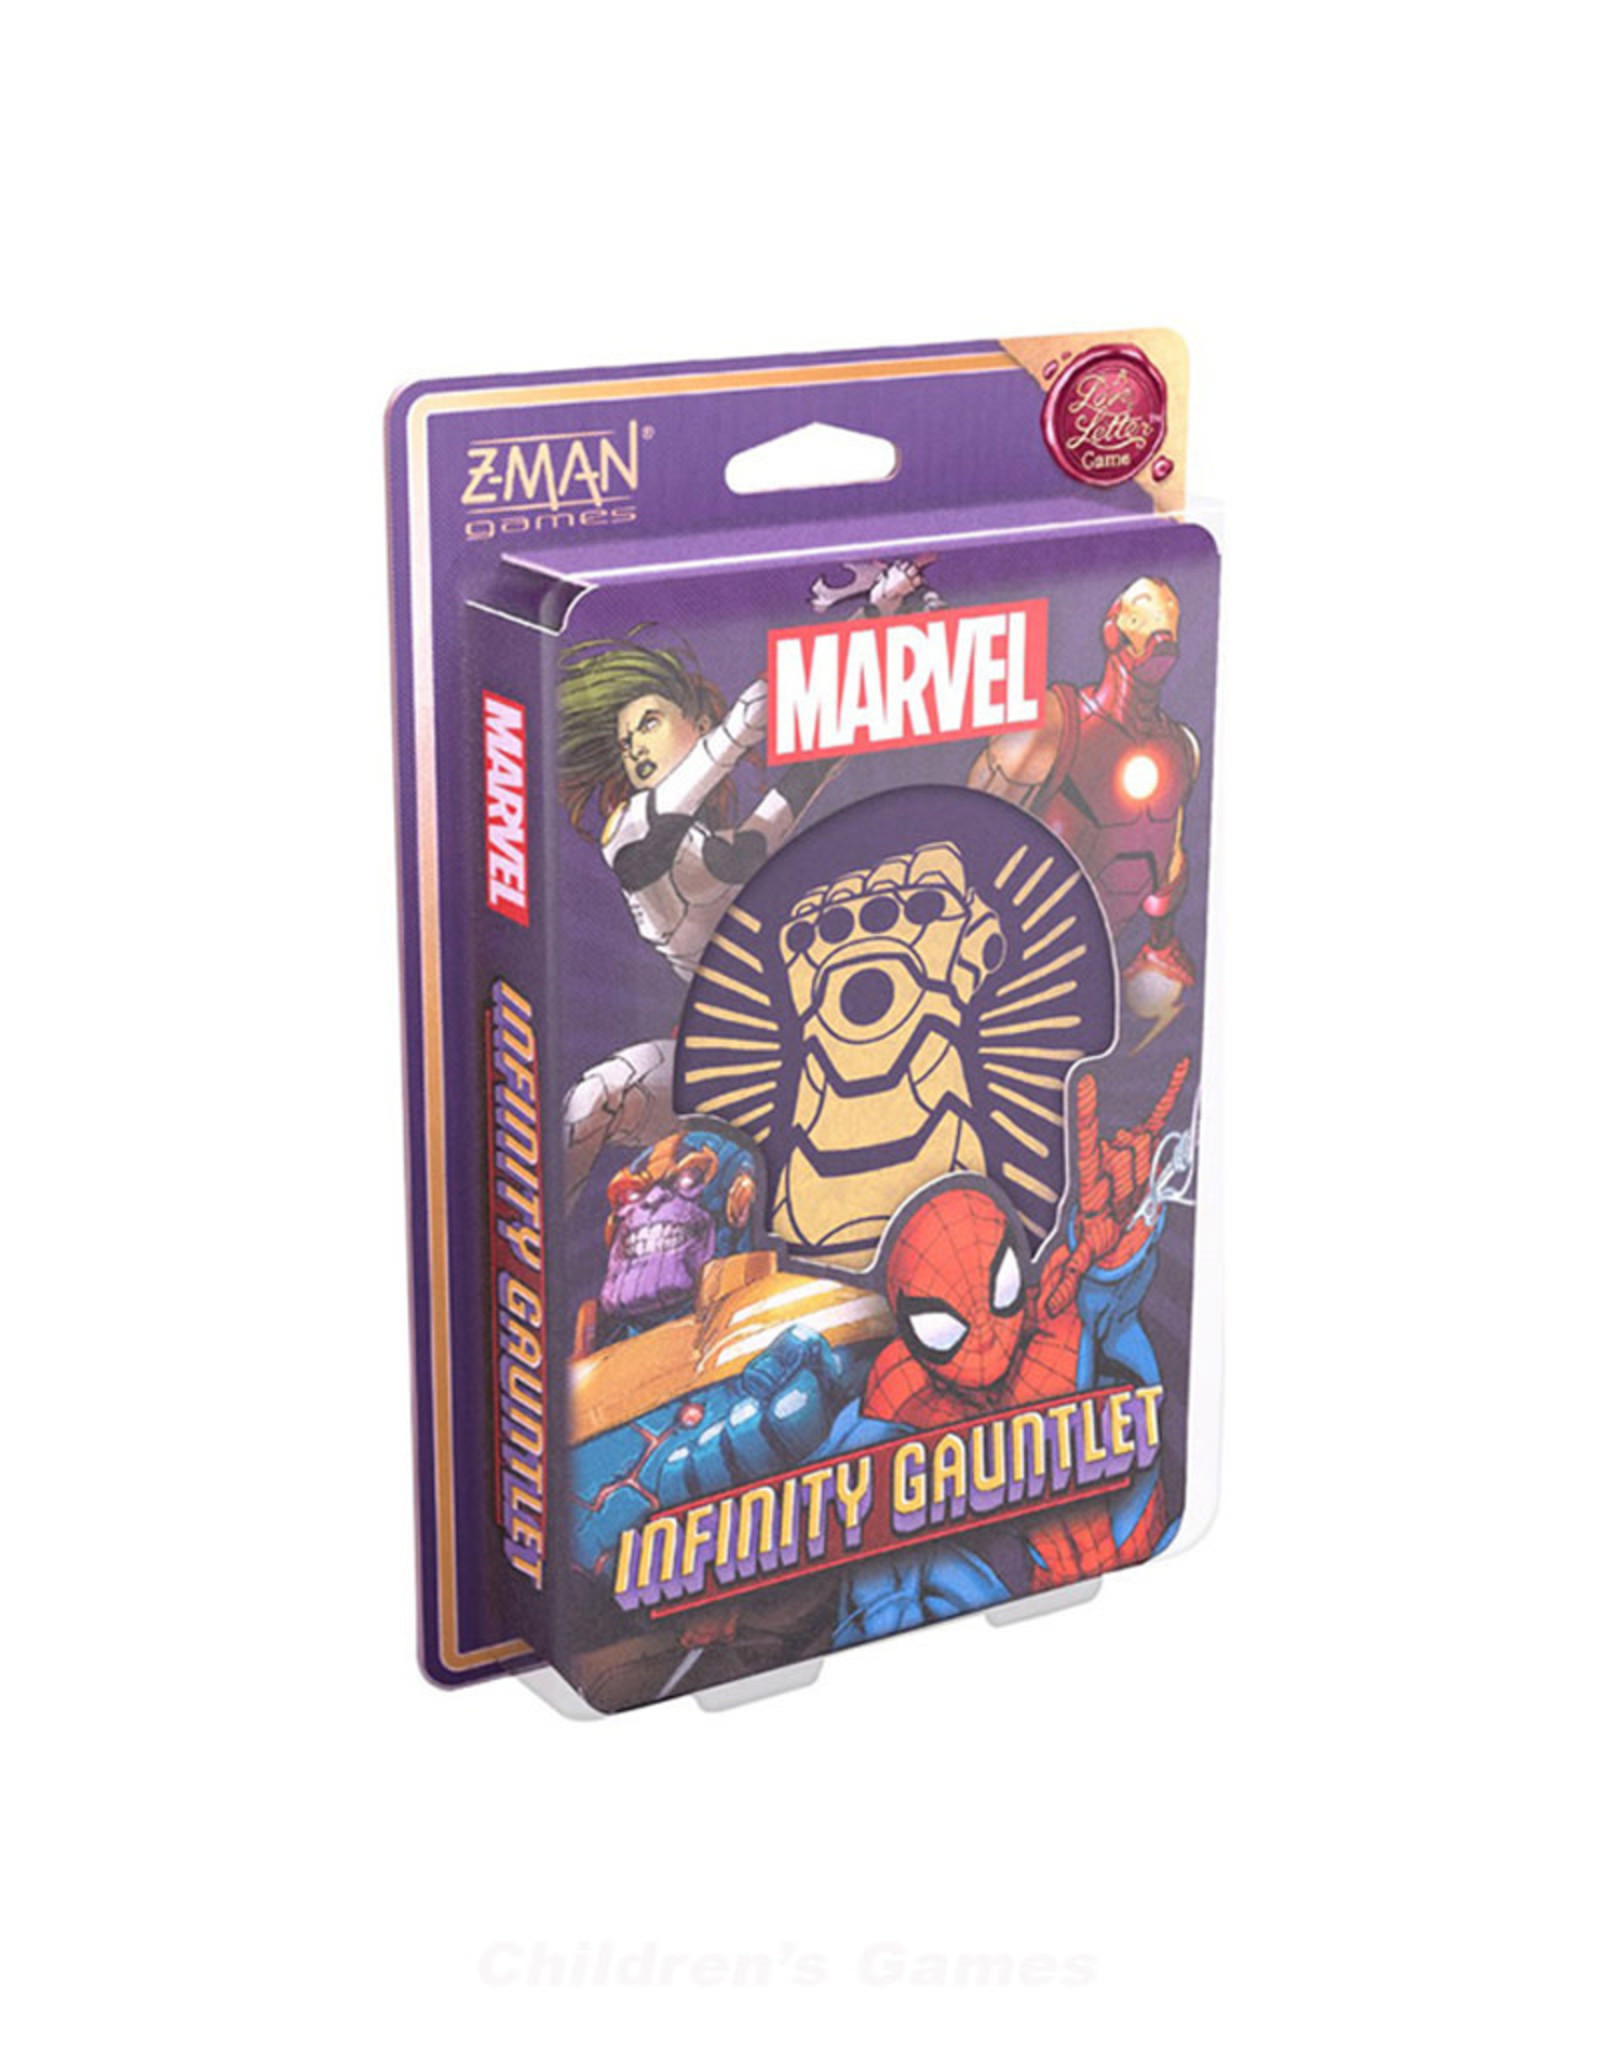 Z-Man Games Infinity Gauntlet: A Love Letter Game